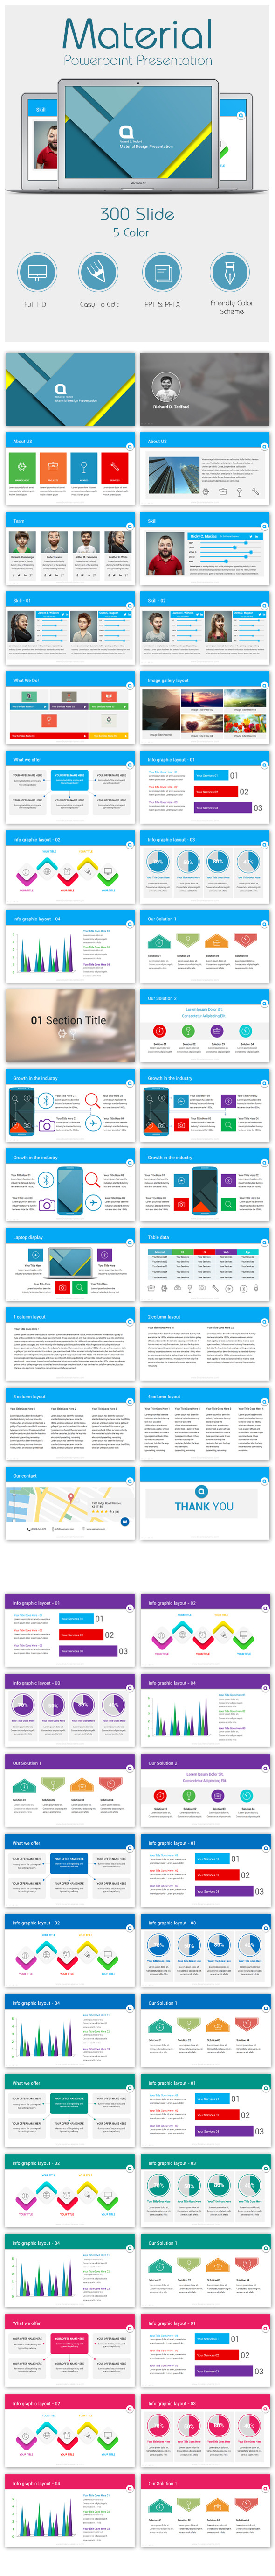 GraphicRiver Material Powerpoint Presentation Templates 11166144